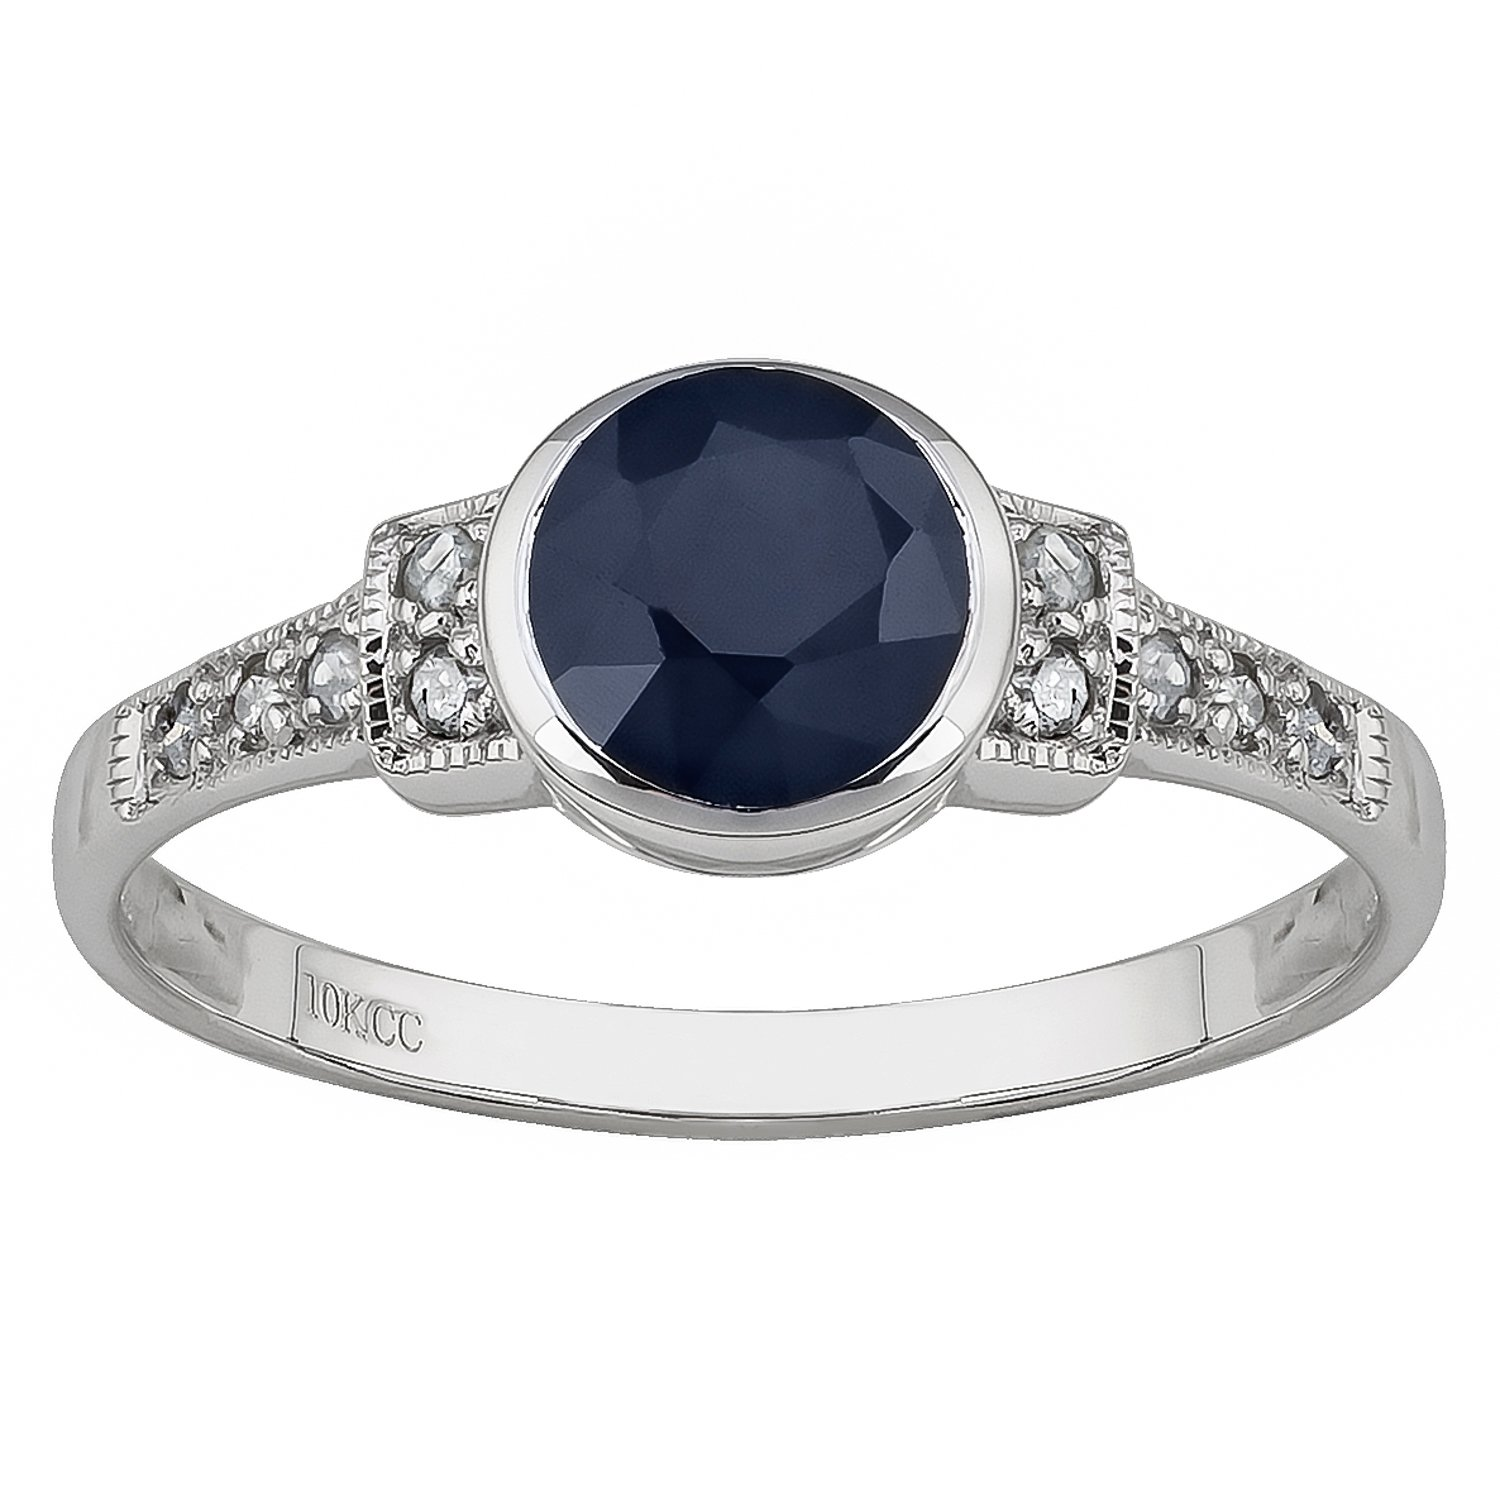 10k White Gold Vintage Style Genuine Round Sapphire and Diamond Ring